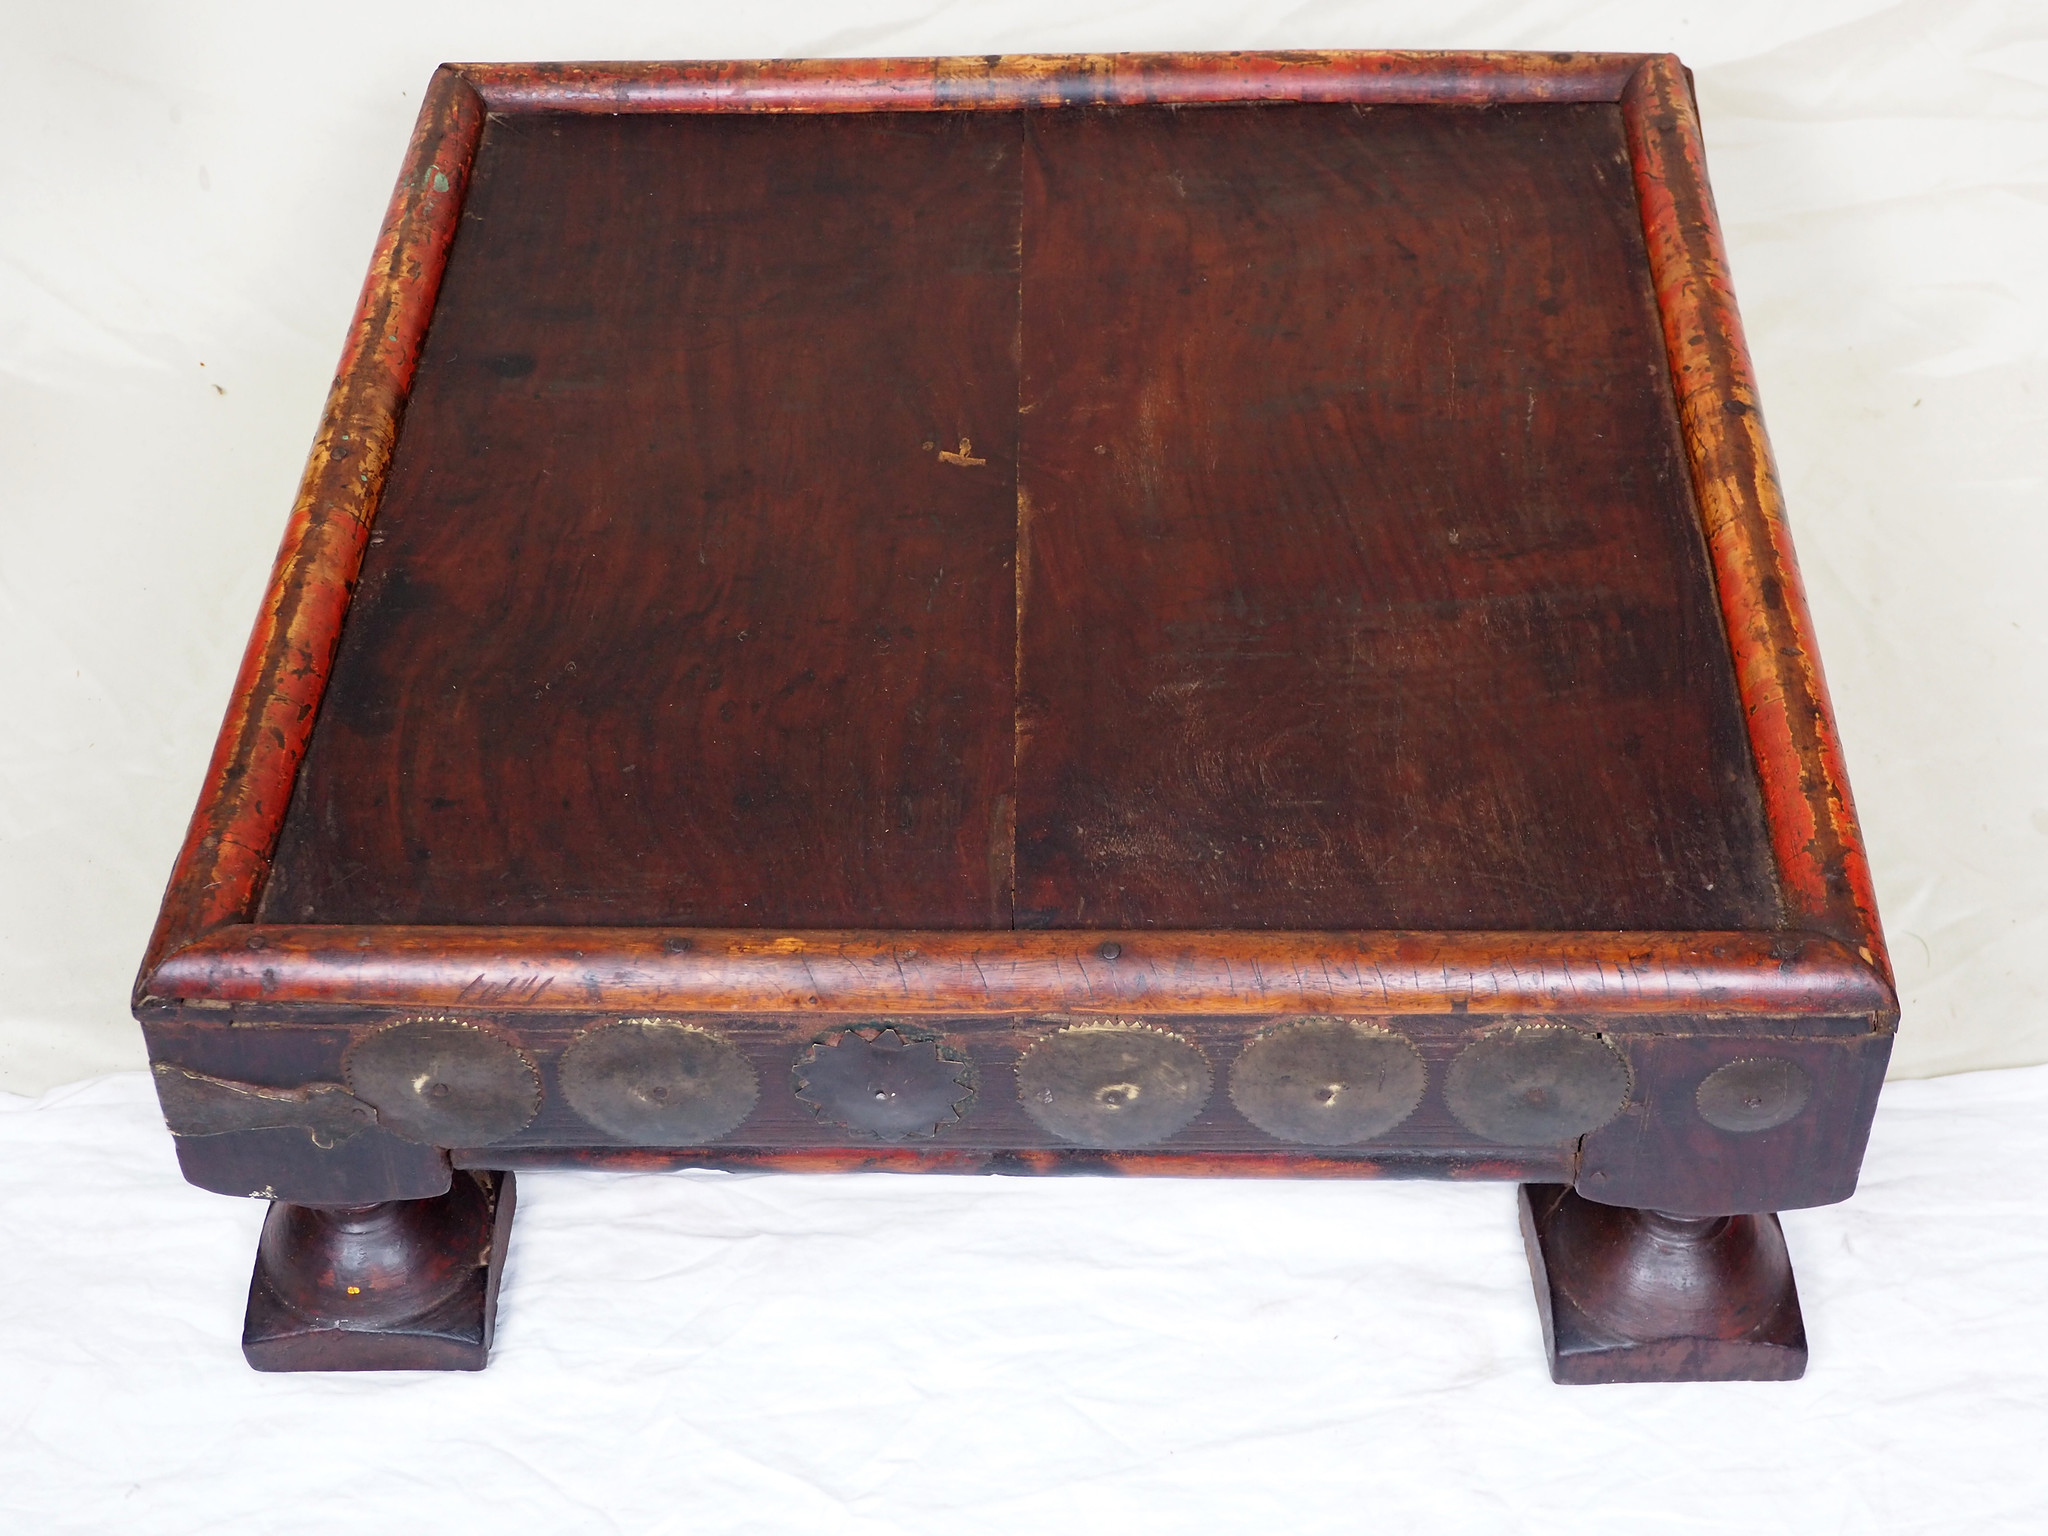 60x60 cm Very rare Antique solid wood orient tea table sidtable from Afghanistan Pakistan No:21/1